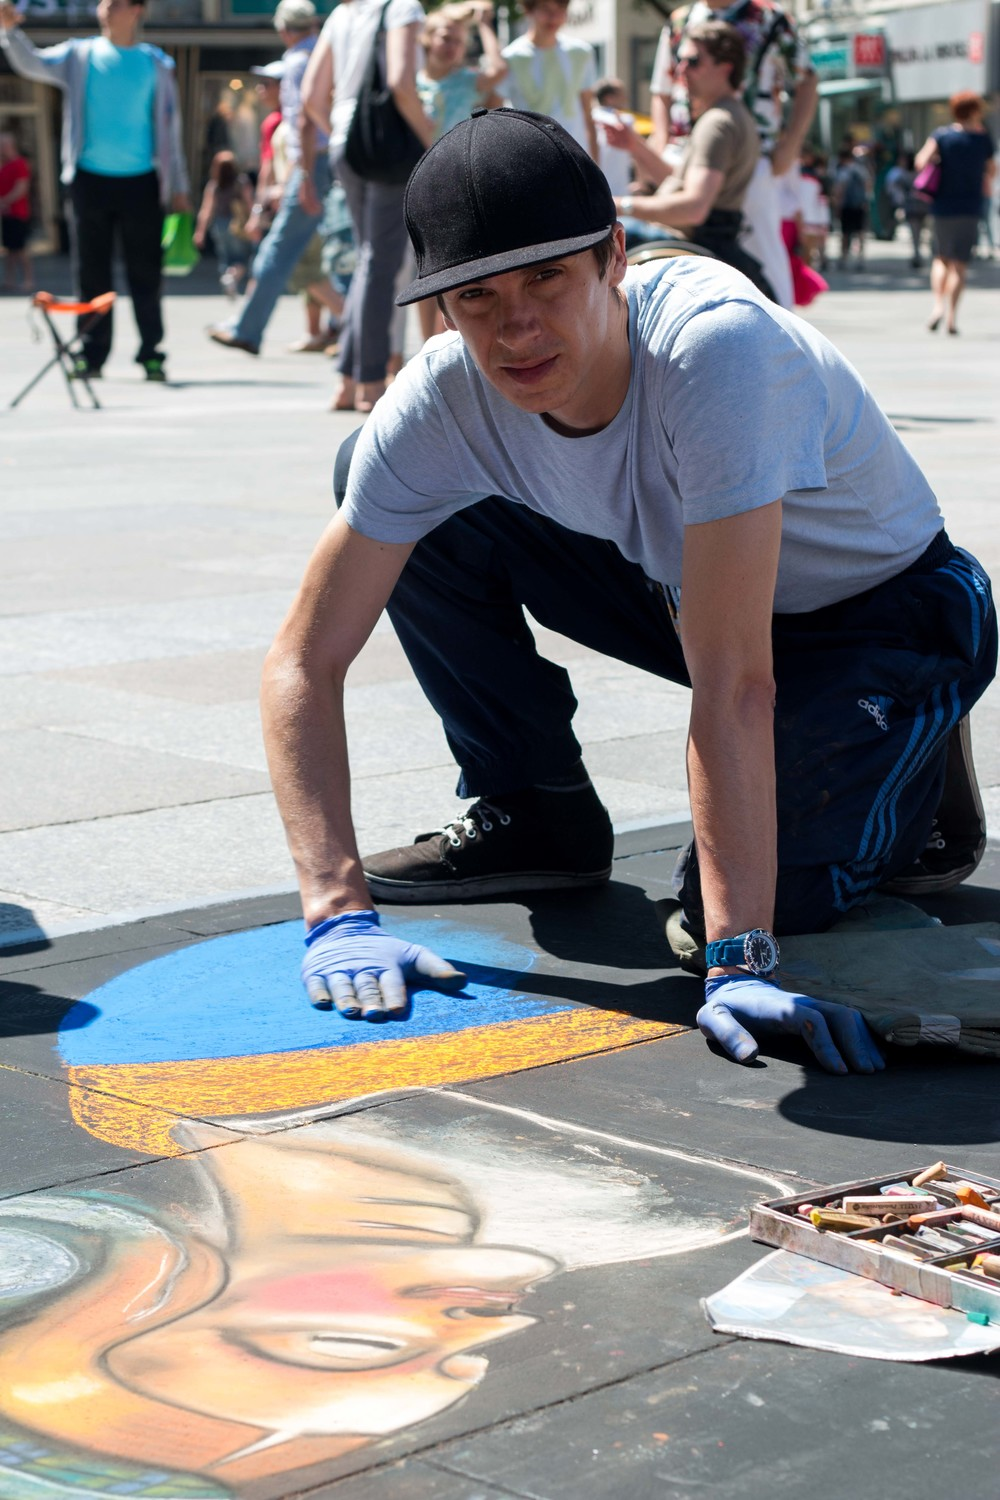 Street artist working on an amazing chalk painting